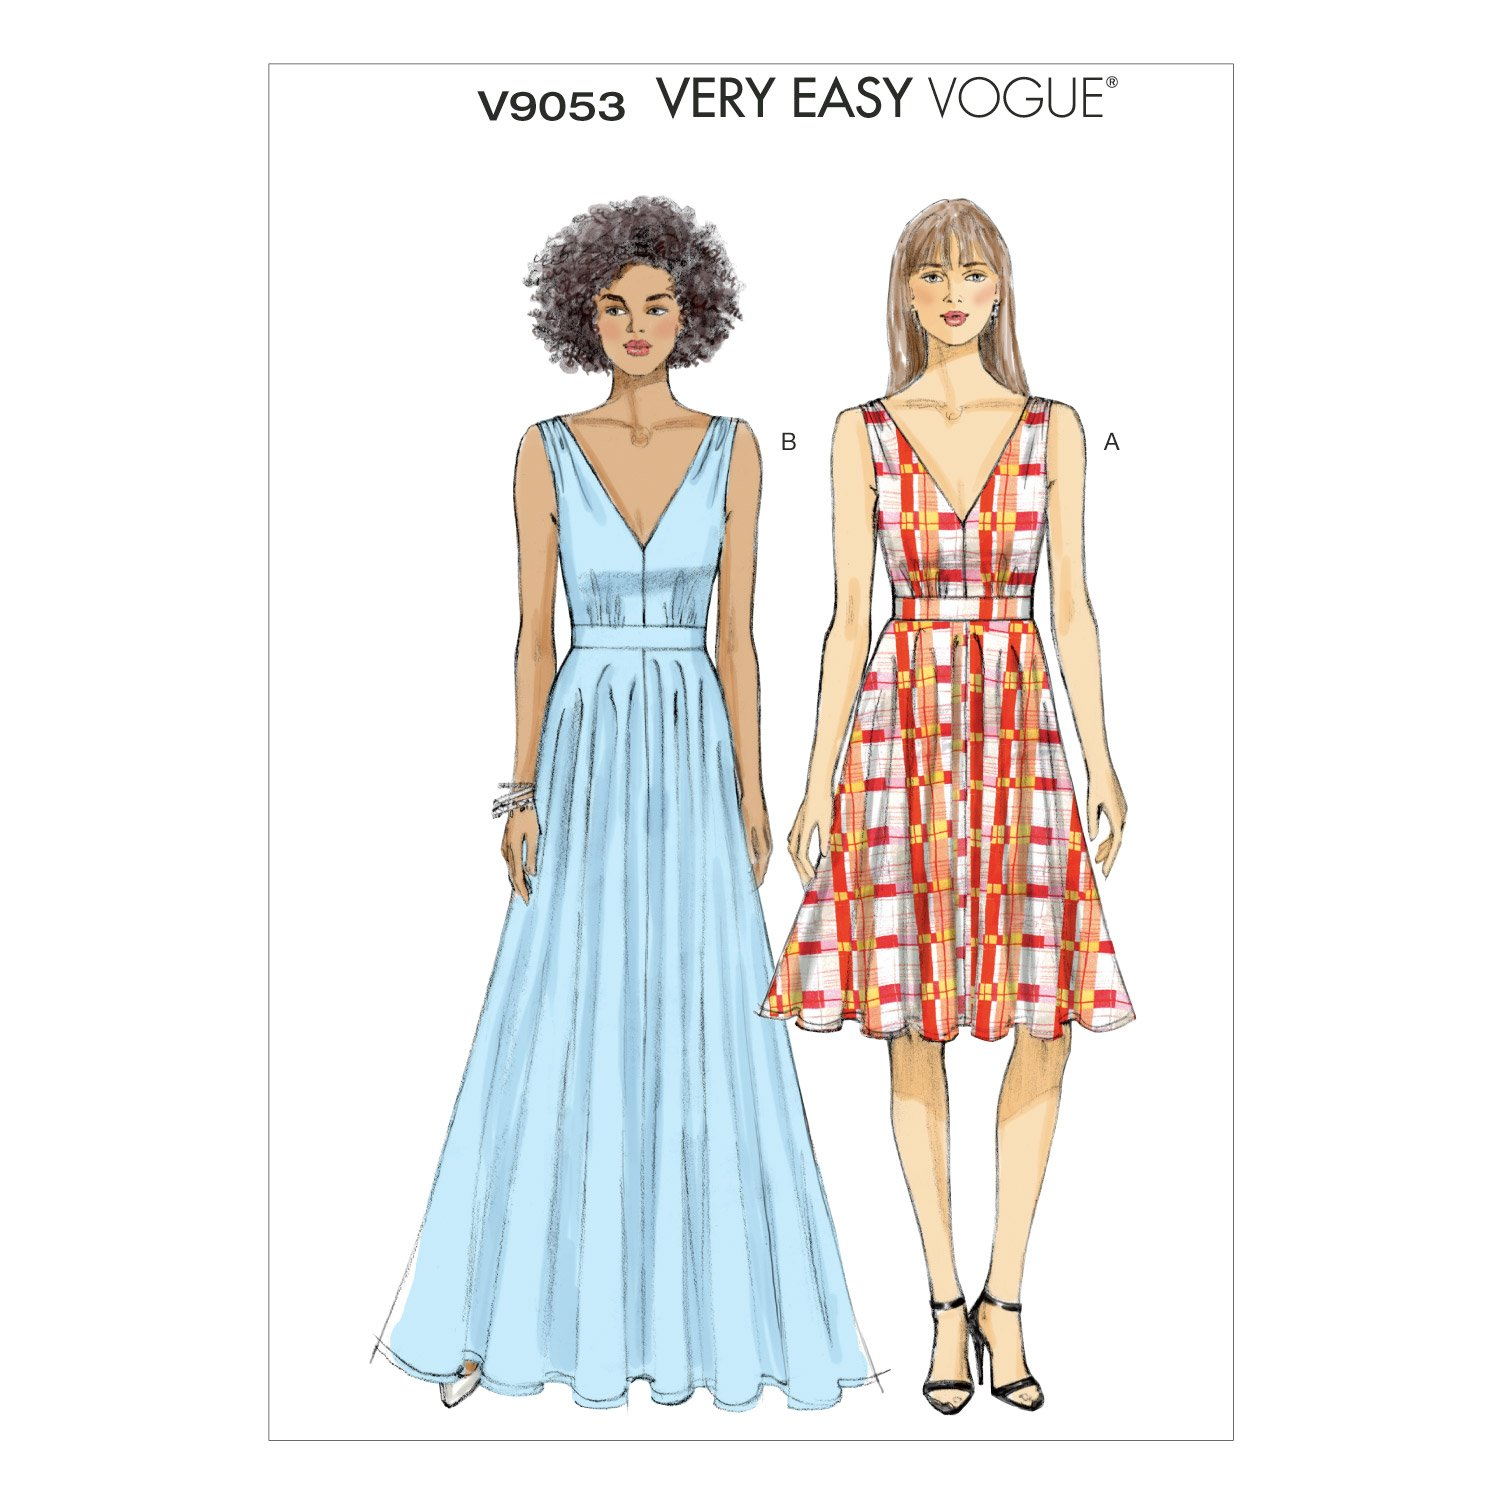 Amazon.com: Vogue Patterns V9053 Misses\' Dress Sewing Template, A5 ...